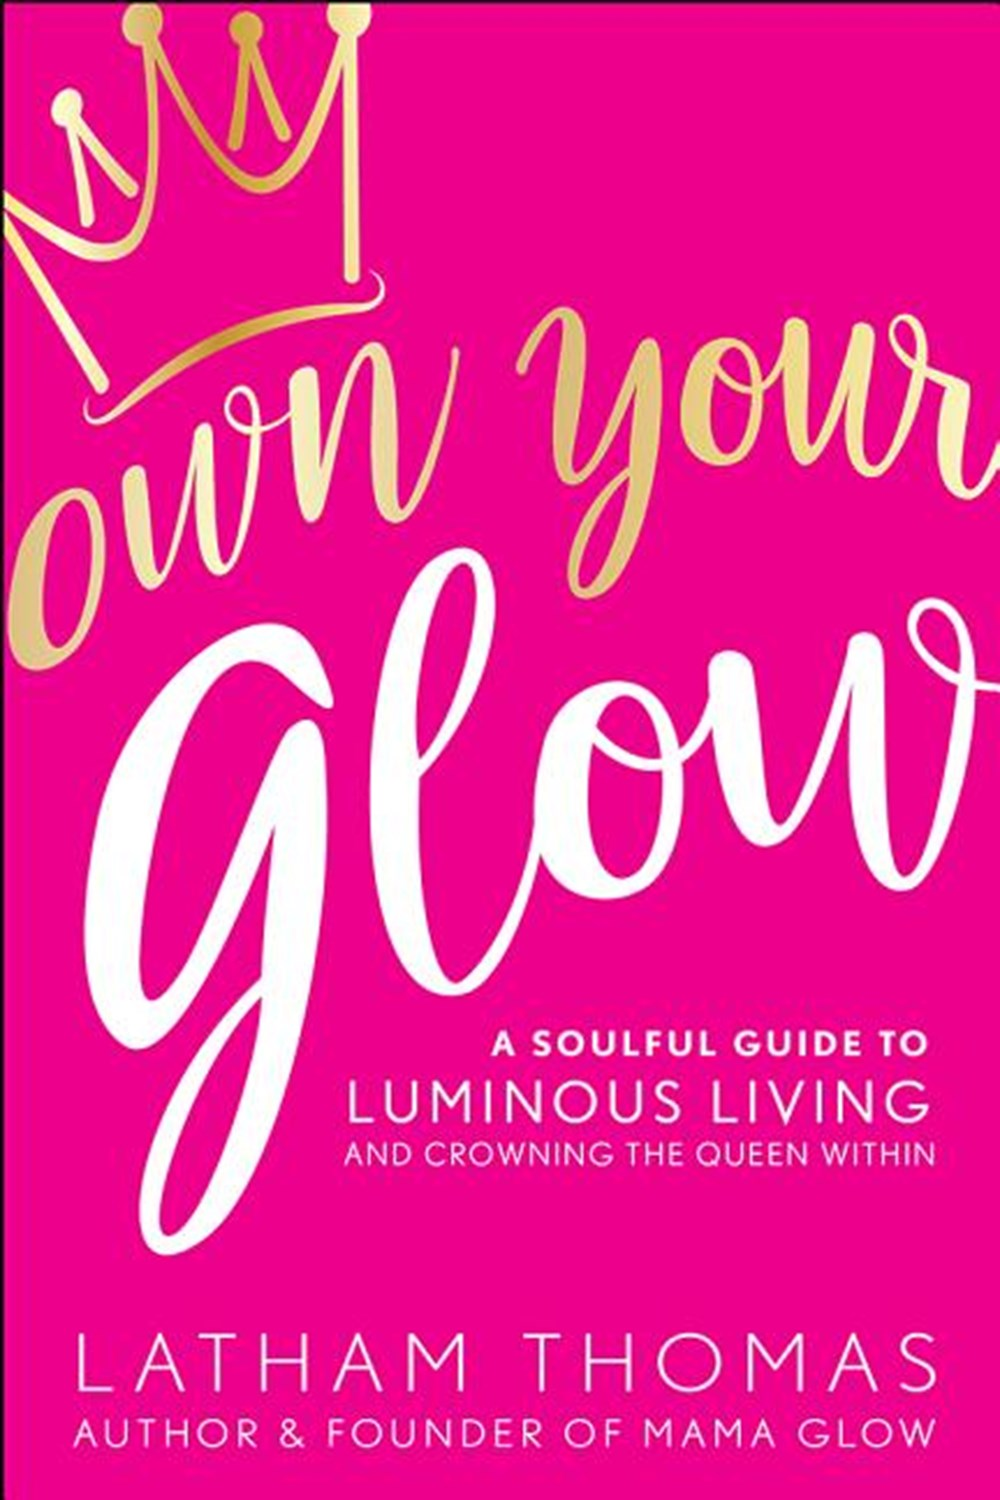 Own Your Glow A Soulful Guide to Luminous Living and Crowning the Queen Within